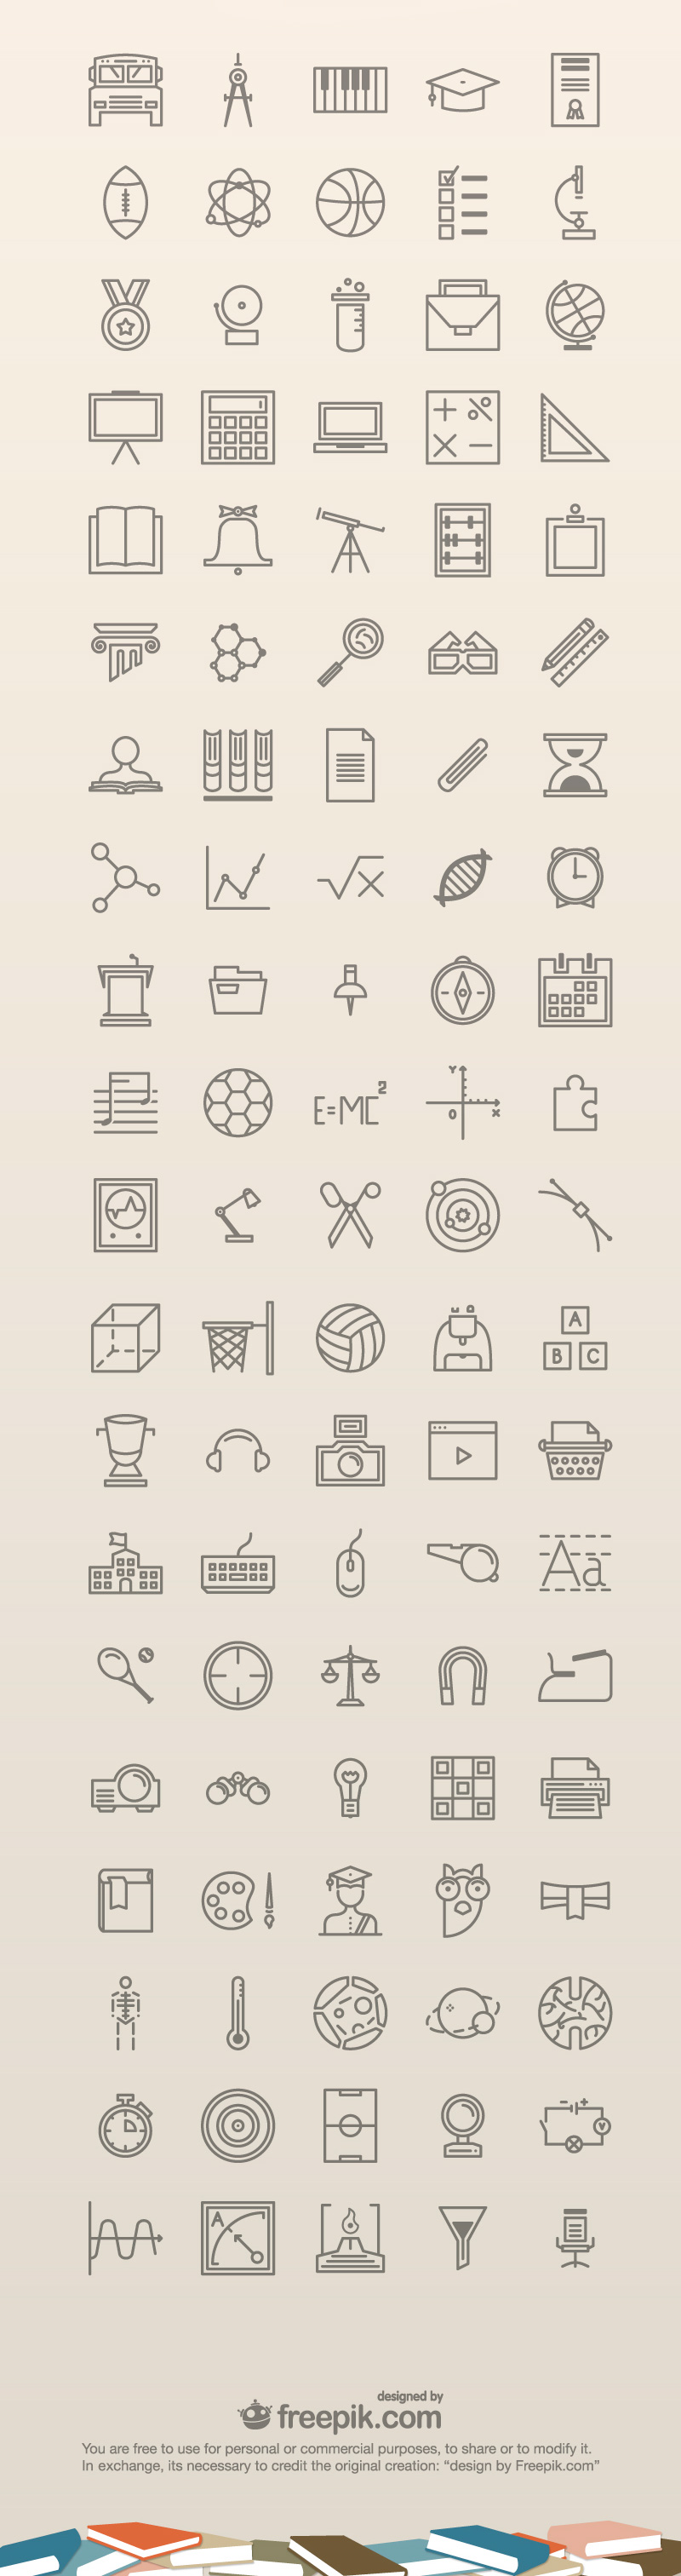 100-free-education-icons